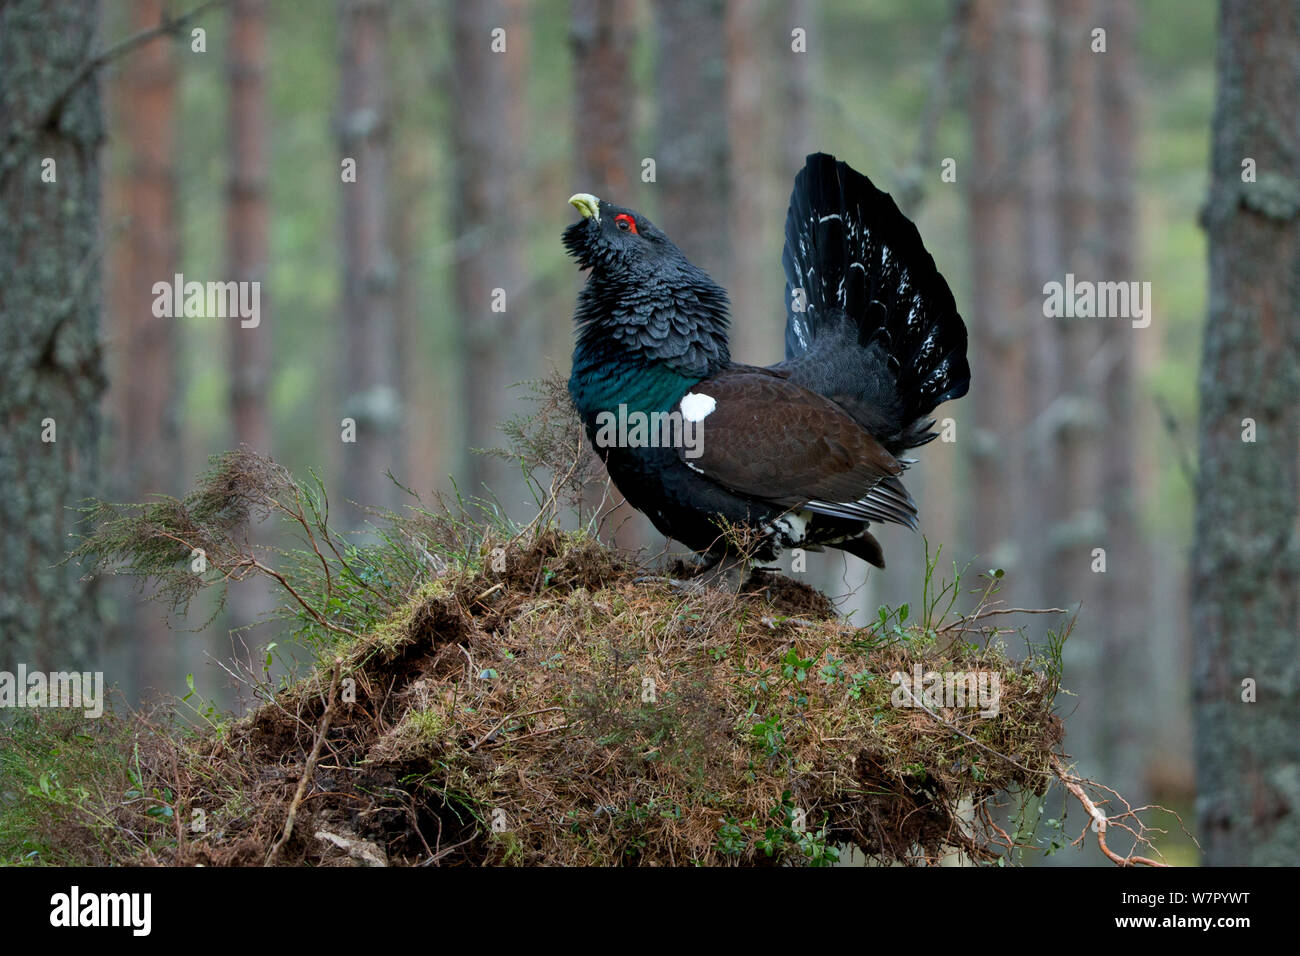 Capercaillie (Tetrao urogallus) male displaying at lek. Scotland, UK, February. Stock Photo